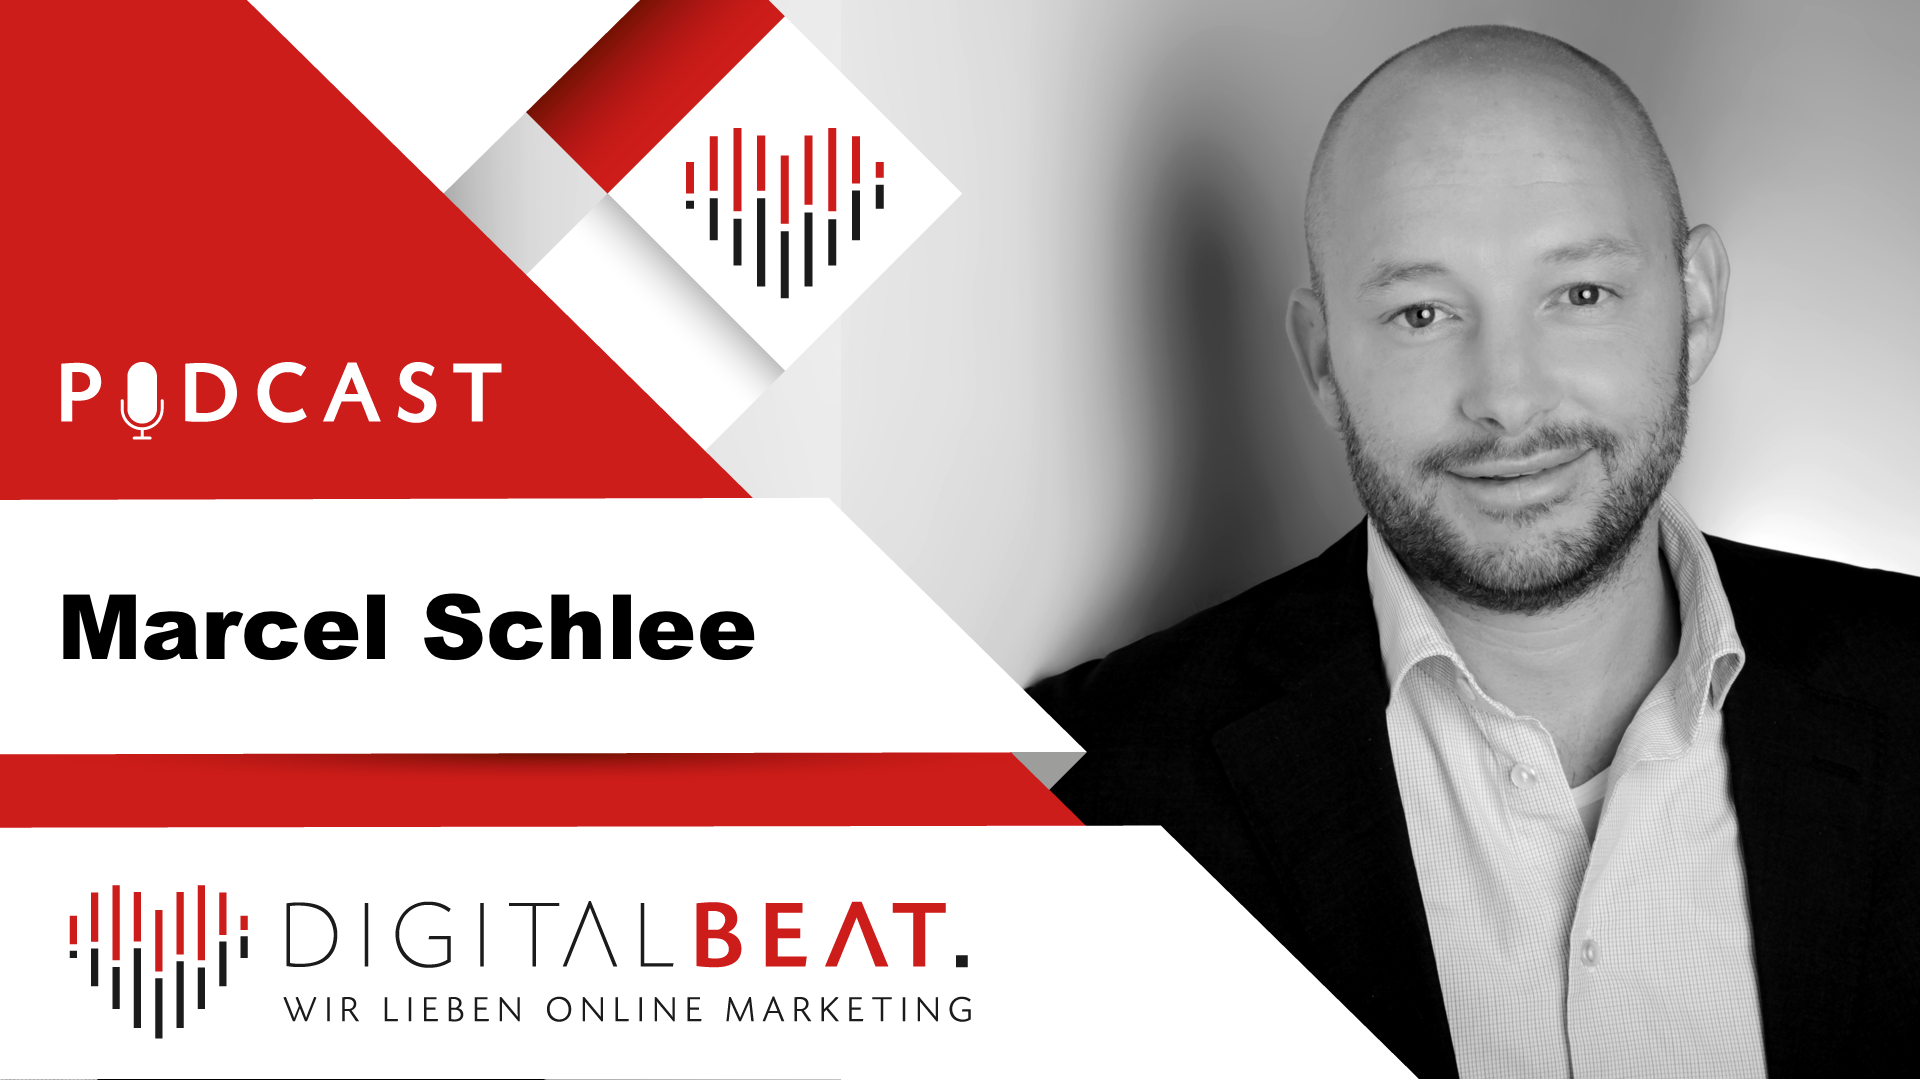 Podcast Marcel Schlee Digital Beat